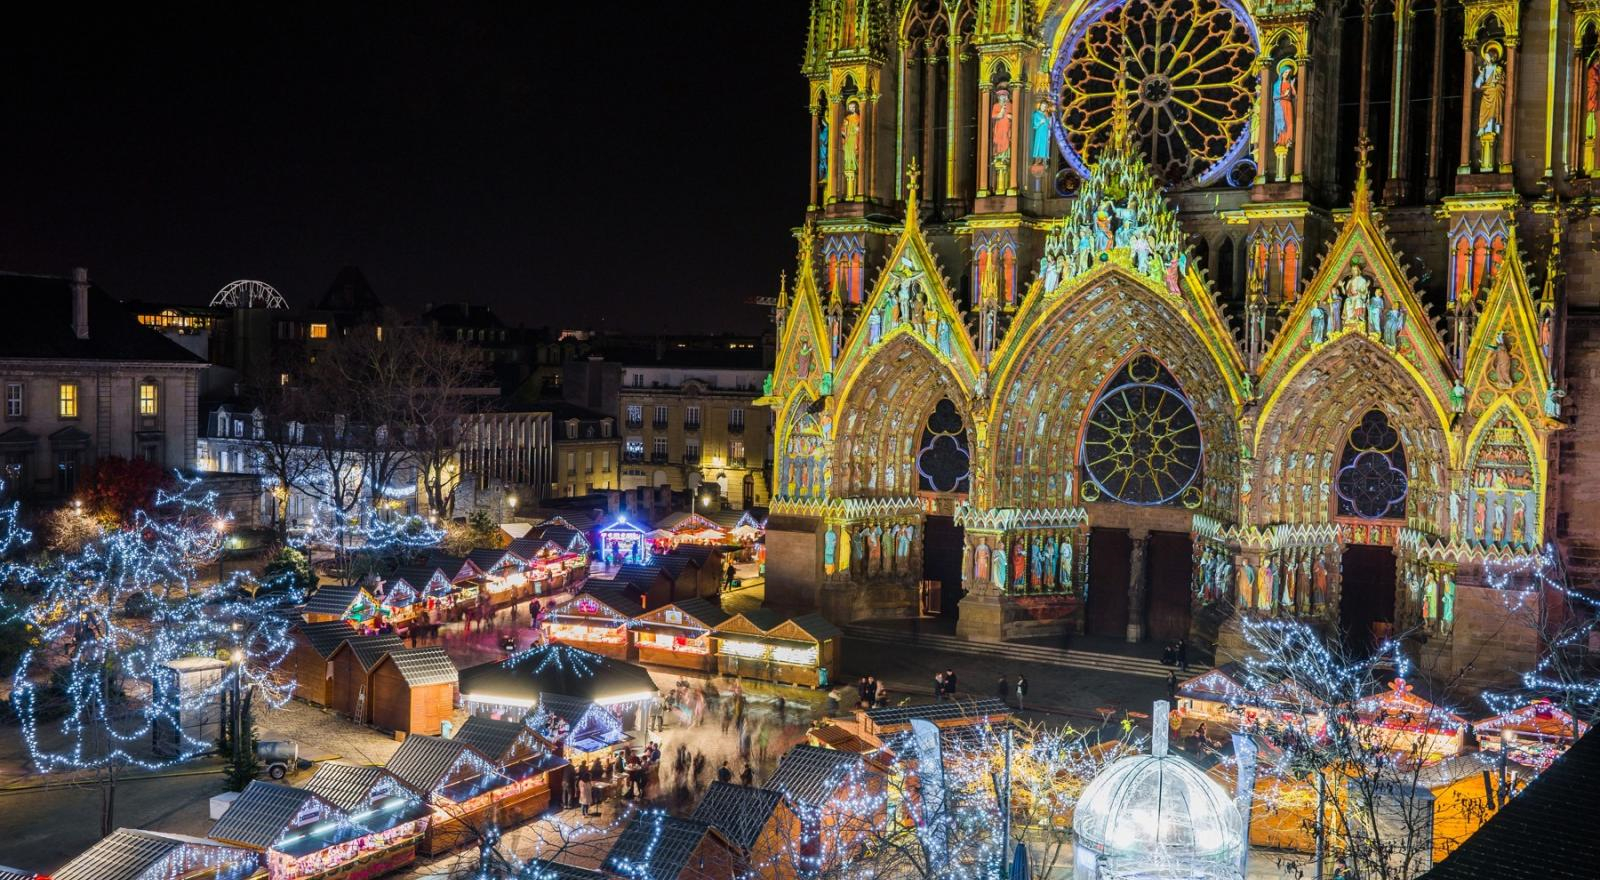 Brightful Christmas Market in Reims